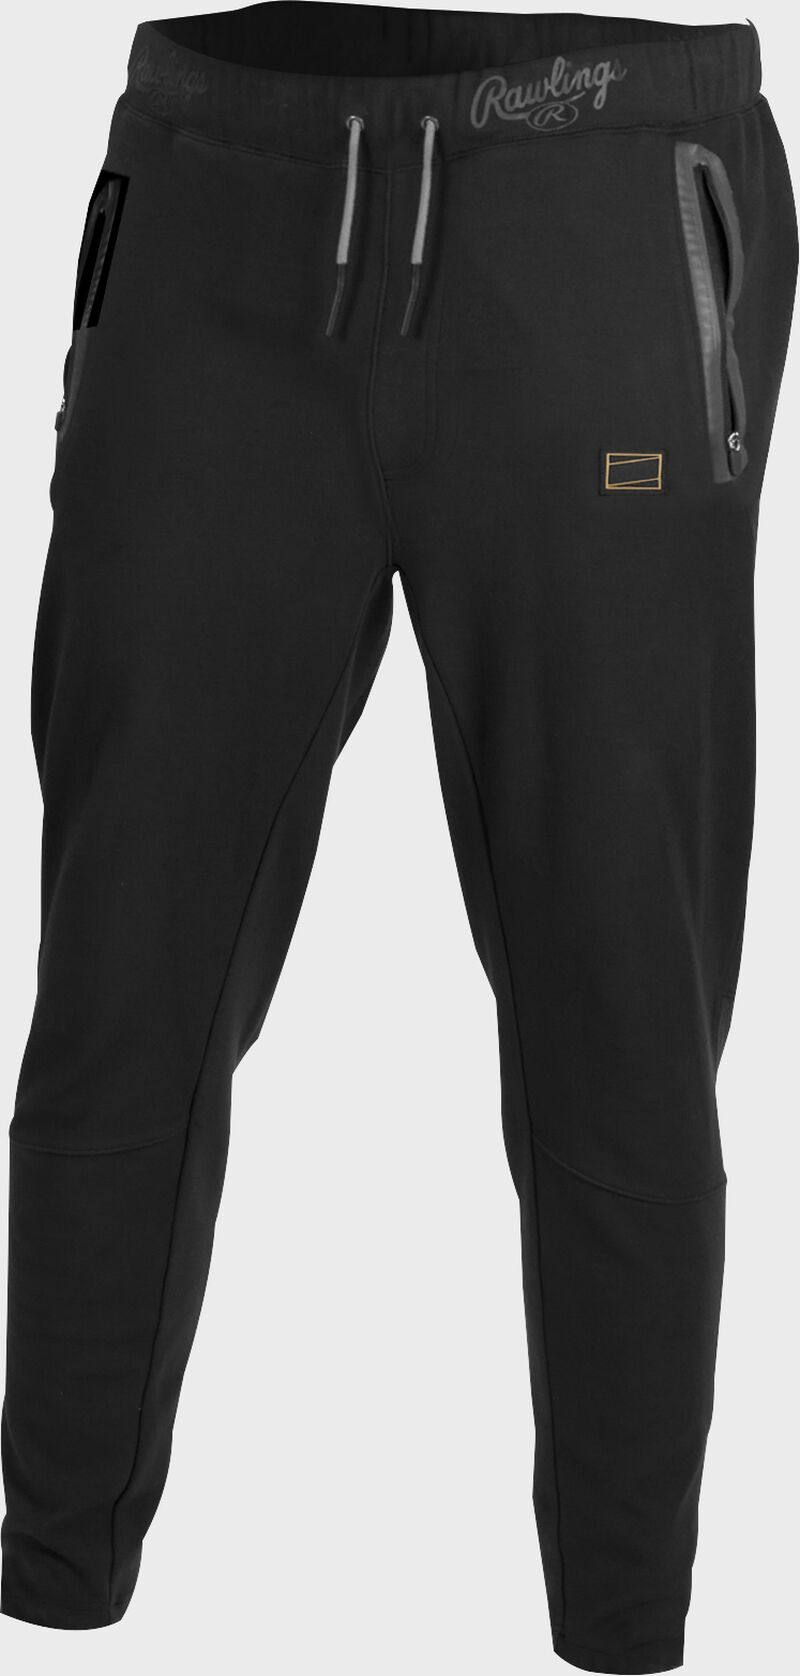 Black Gold Collection jogger style pants with gray draw strings - SKU: GCJOG-B